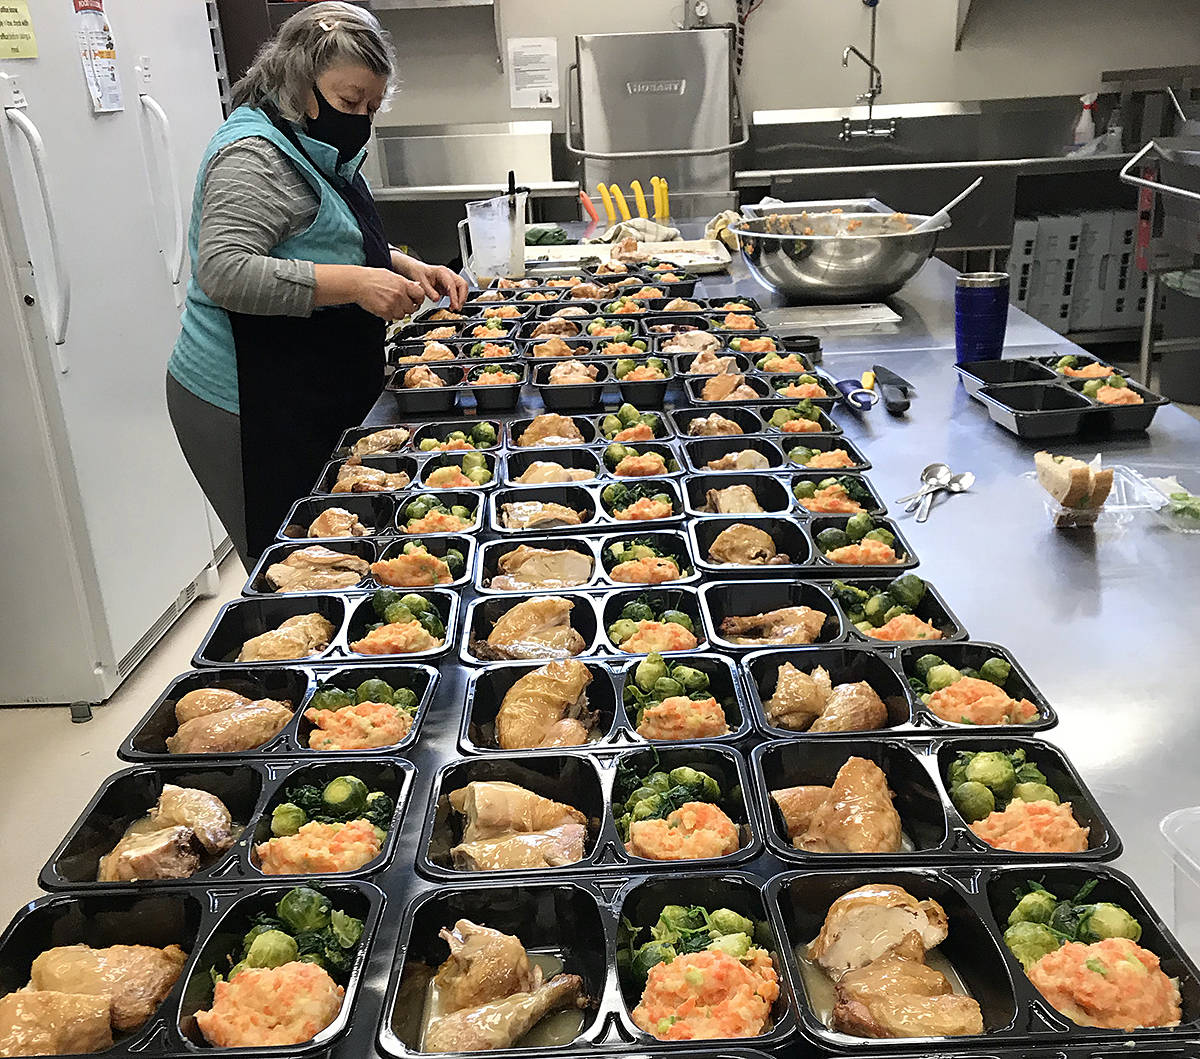 There are currently four volunteers running the Community Kitchen program for Langley Meals on Wheels - working twice a week in a local church kitchen to make frozen meals for people in need in the community. Organizer Lesley Wells is looking at adding a third shift, and currently looking for volunteers. (Special to Langley Advance Times)